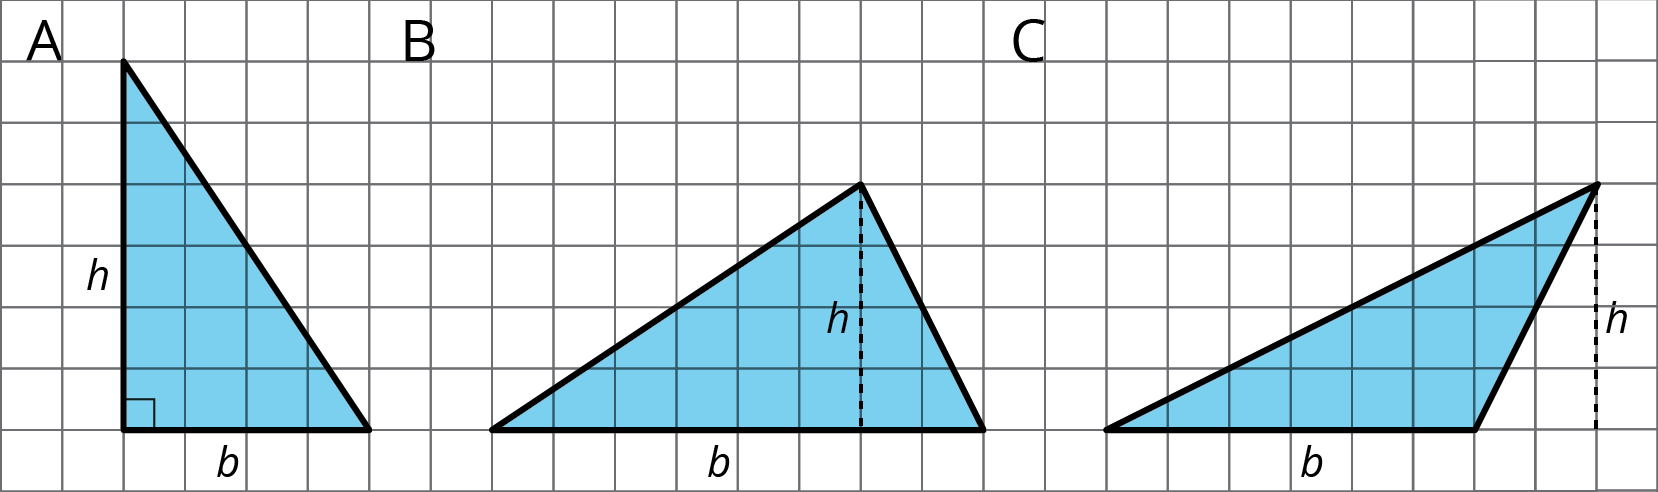 hight resolution of Formula for the Area of a Triangle: Illustrative Mathematics